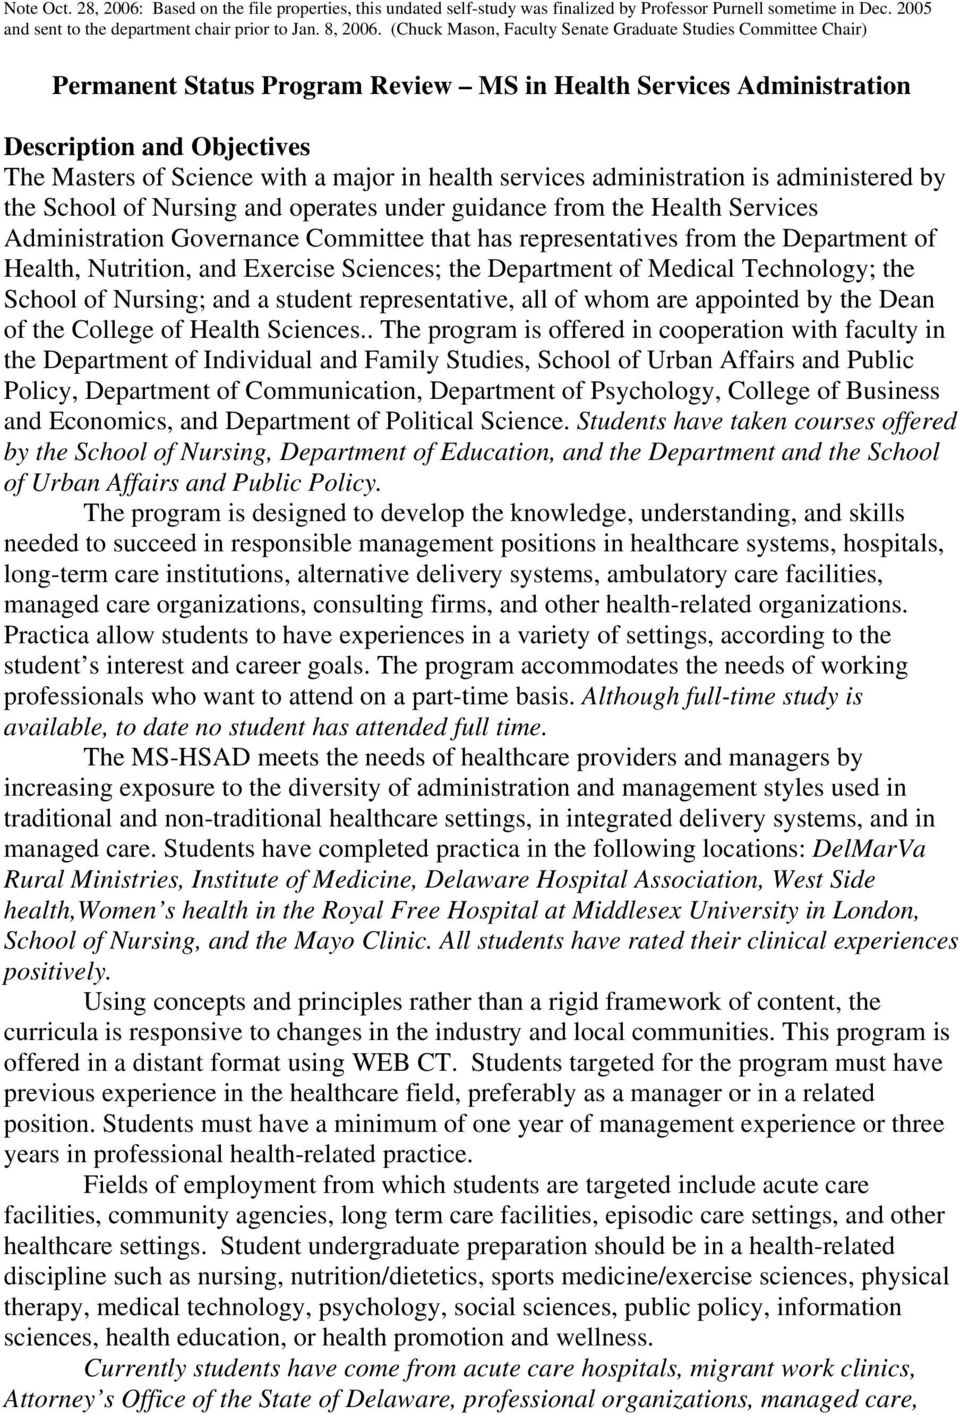 health services administration is administered by the School of Nursing and operates under guidance from the Health Services Administration Governance Committee that has representatives from the